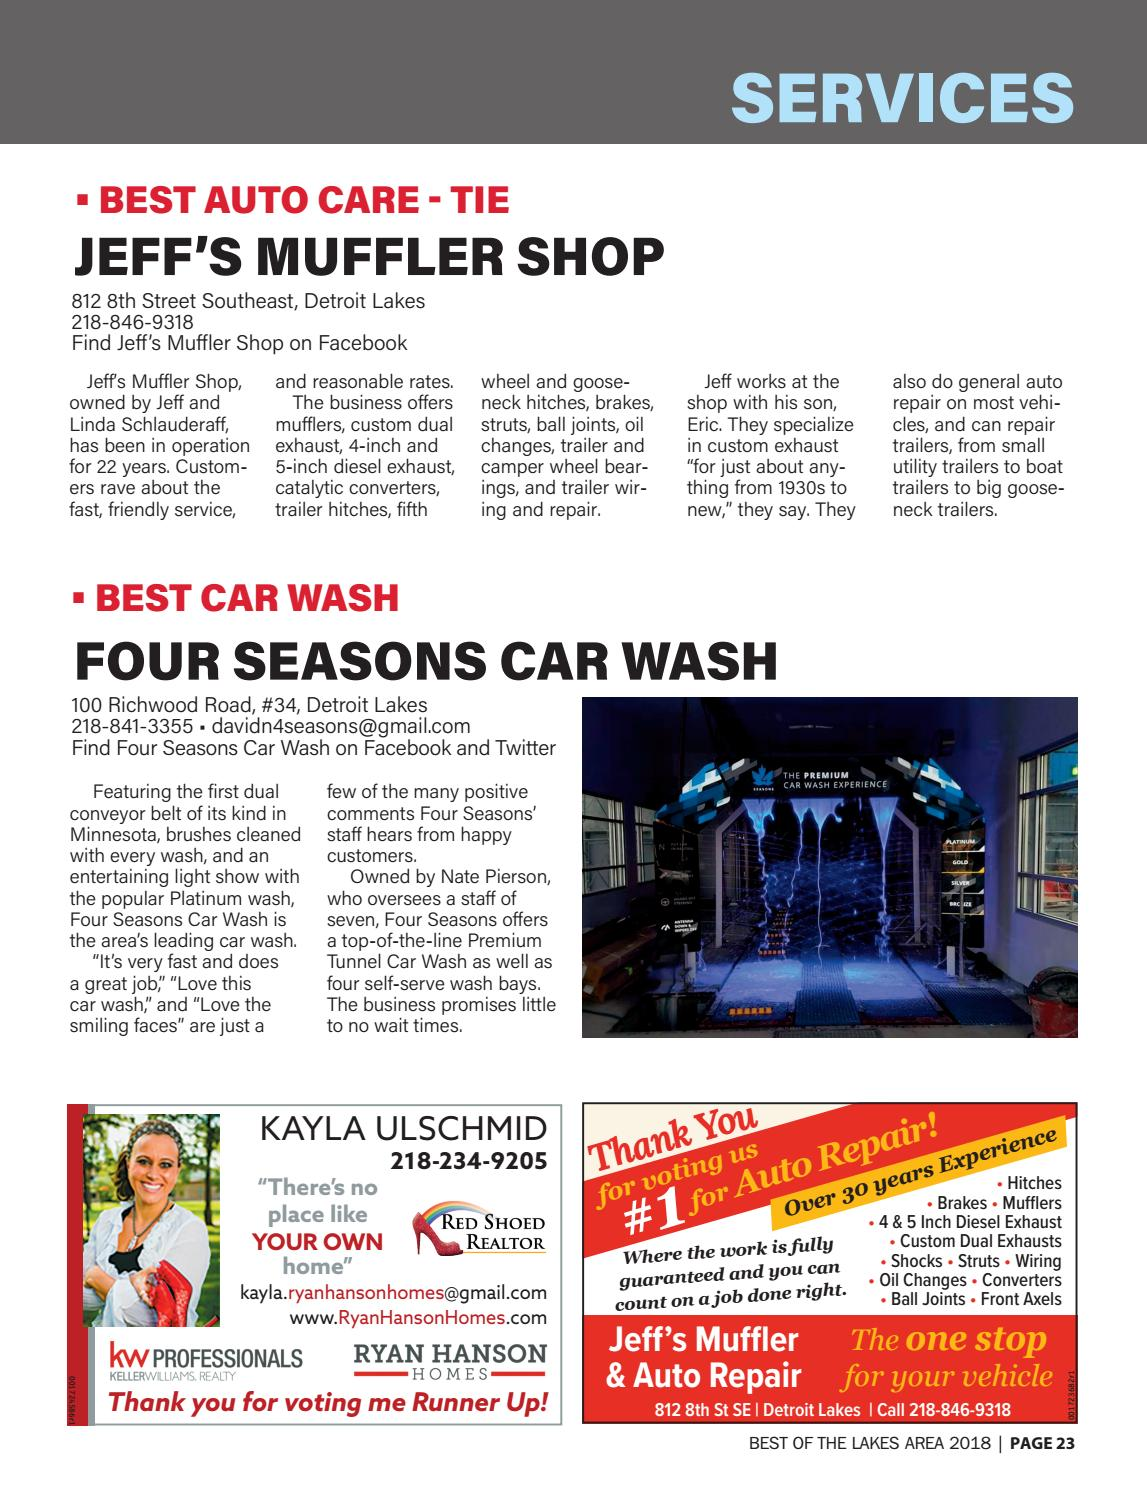 Best Of The Lakes Area 2018 By Detroit Lakes Newspapers Issuu